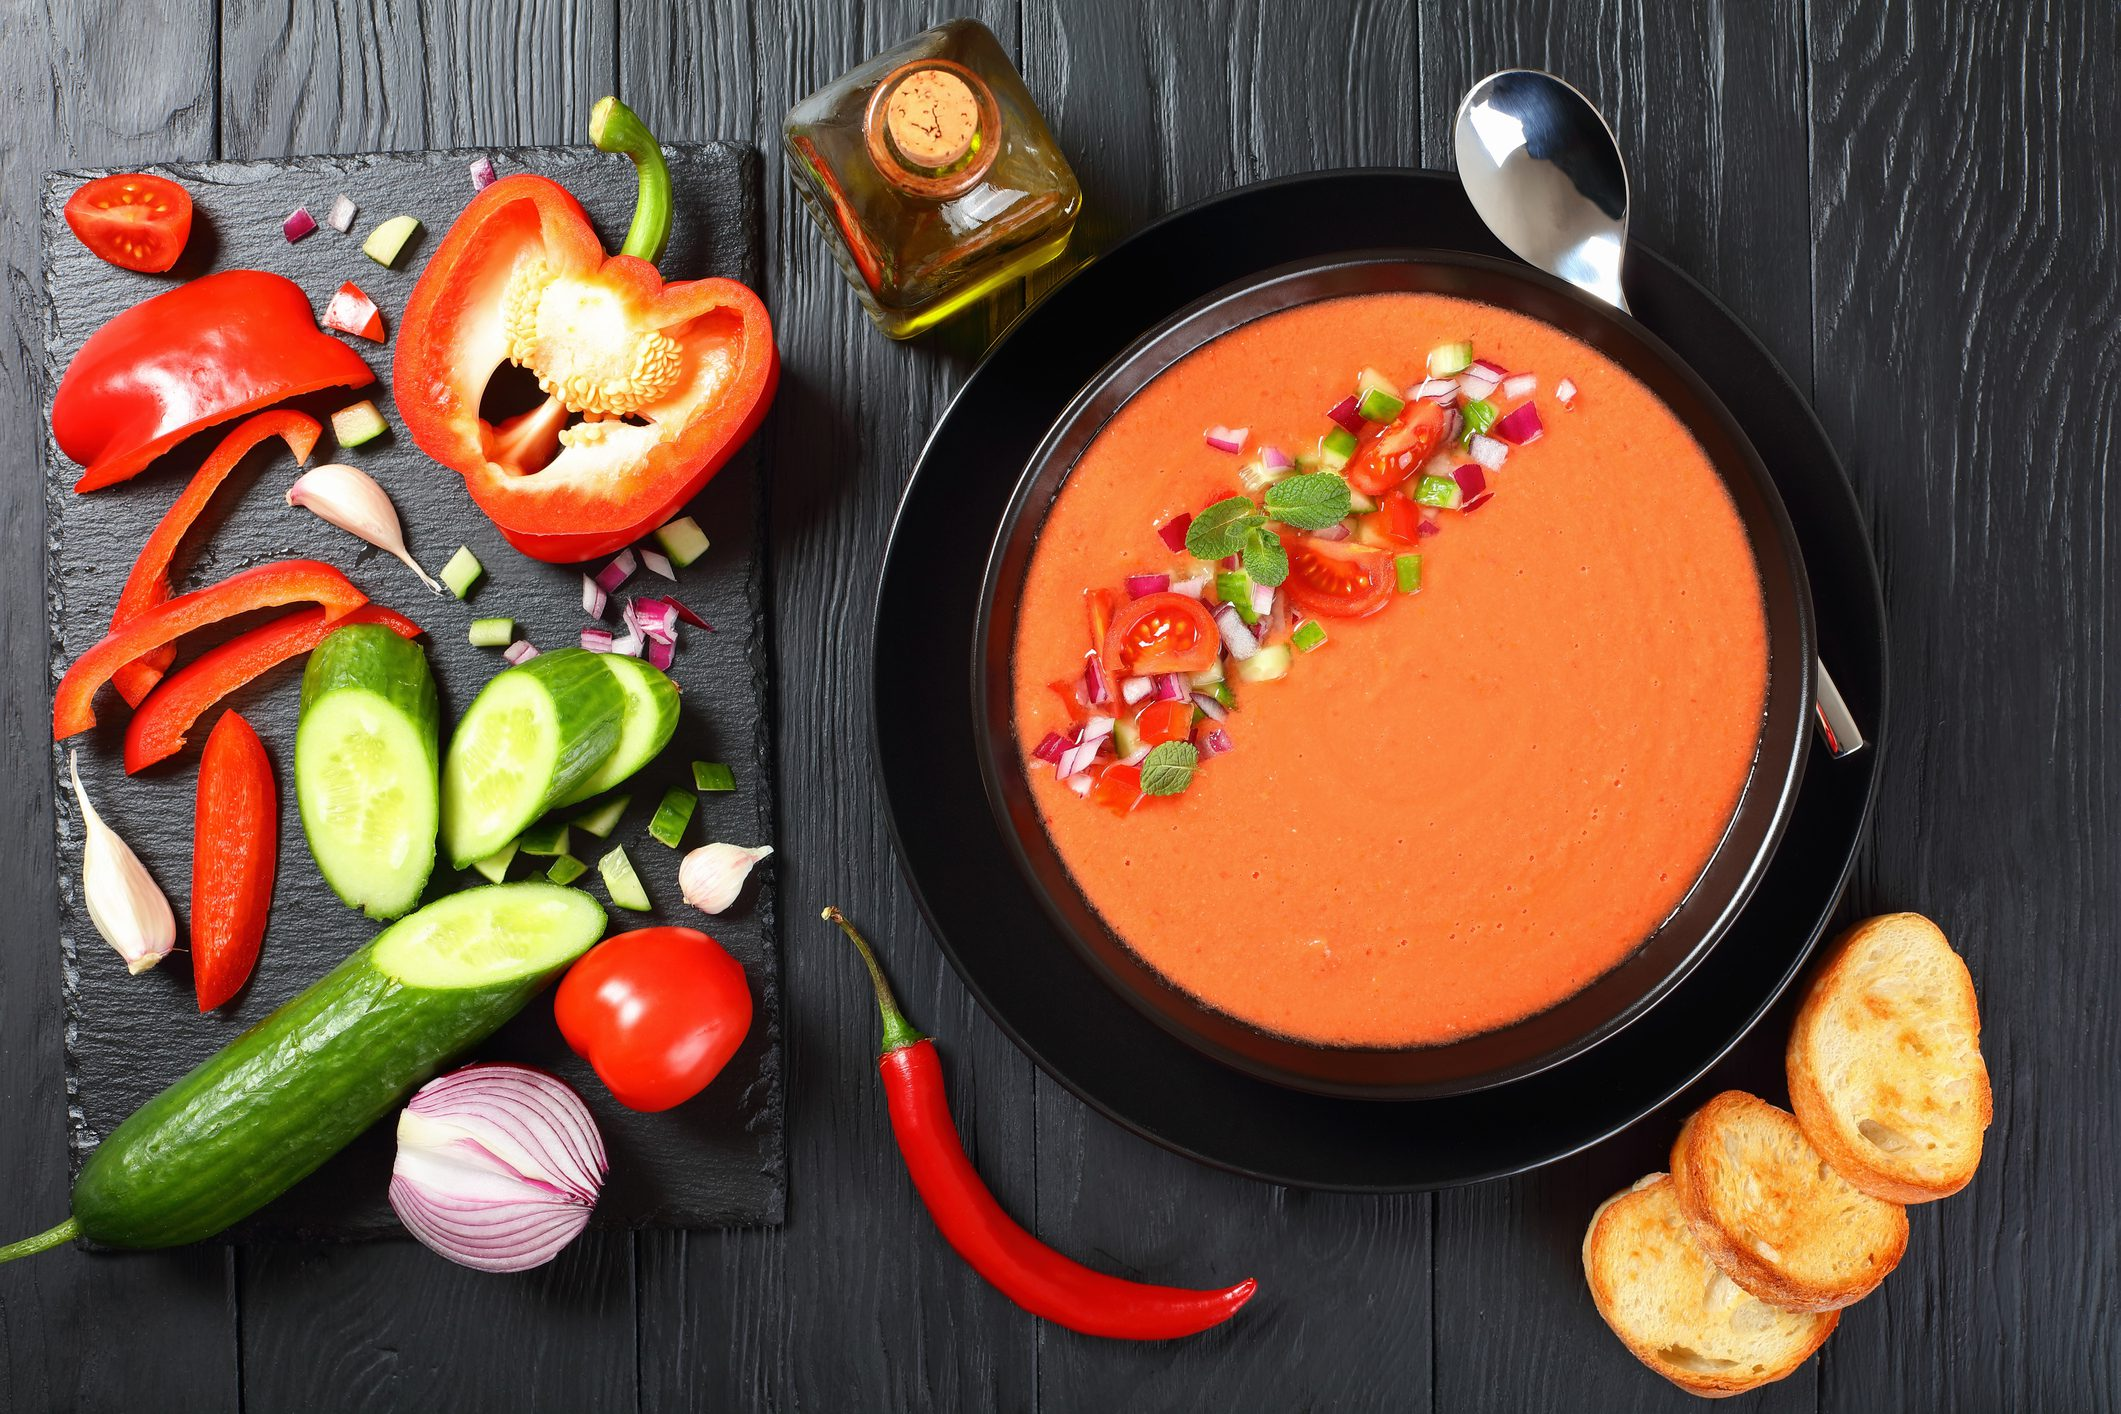 portion of gazpacho in black bowl